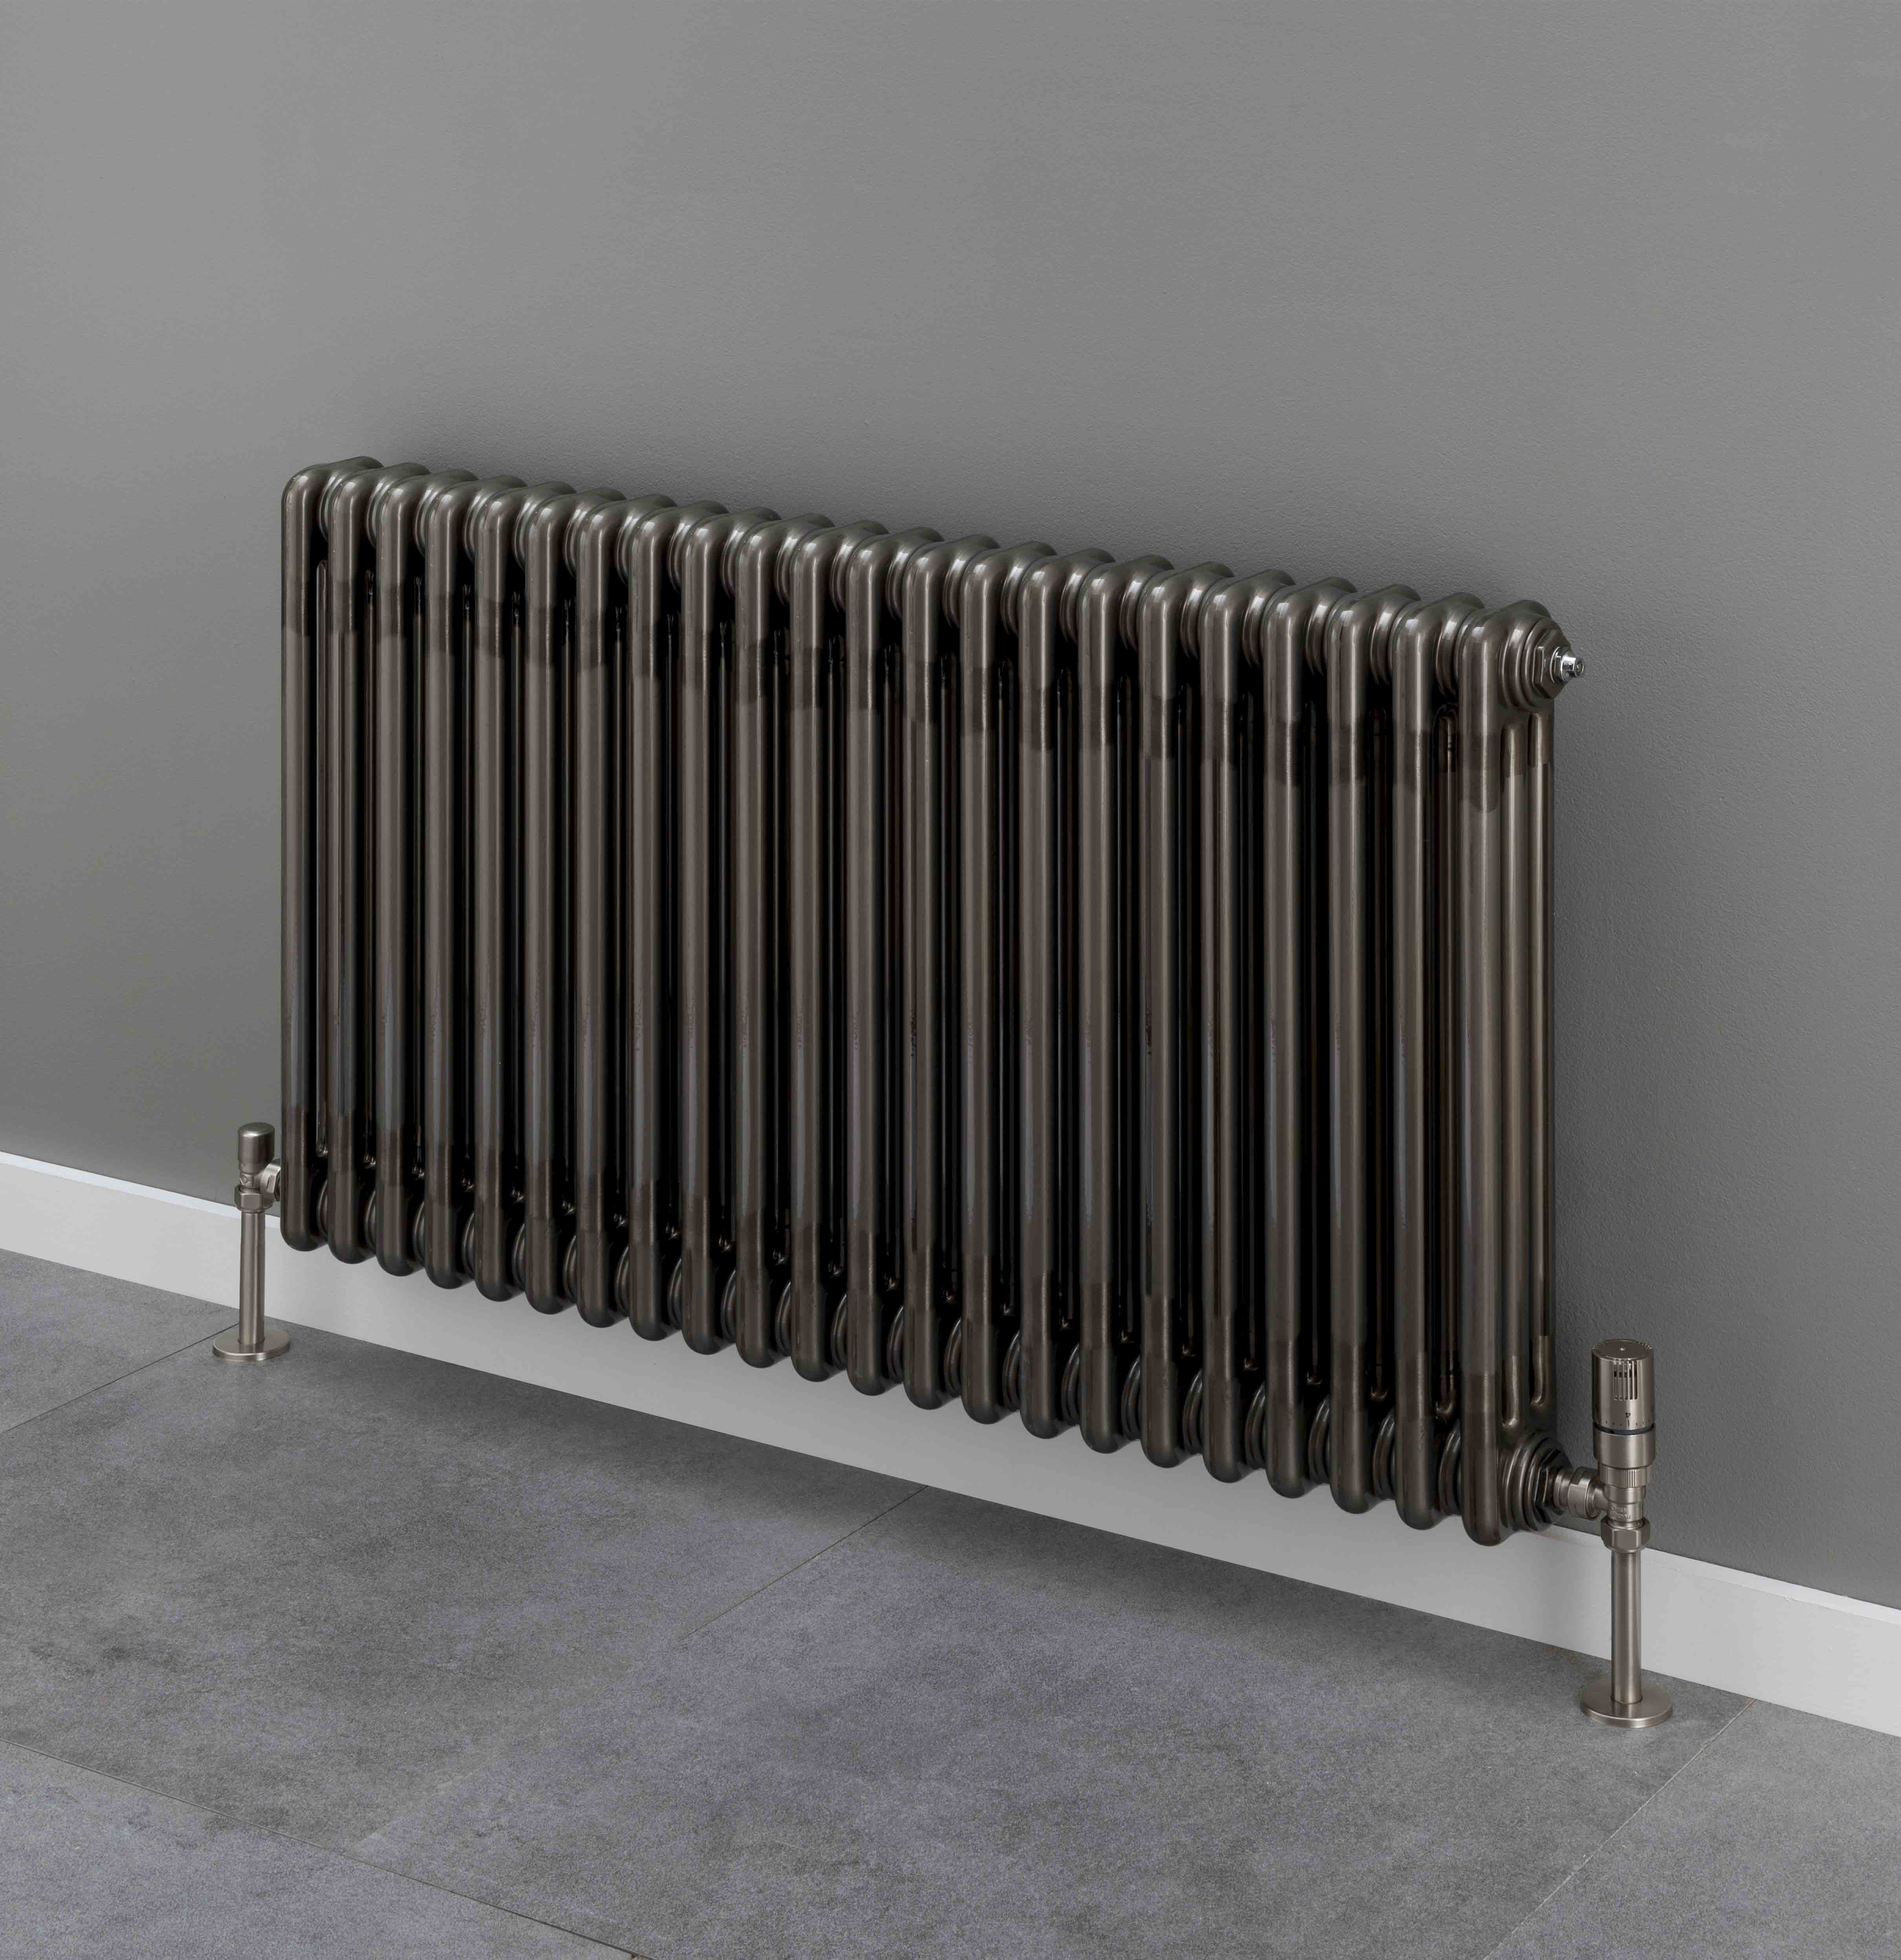 cornel bare metal supplies 4 heat column radiators buy online. Black Bedroom Furniture Sets. Home Design Ideas